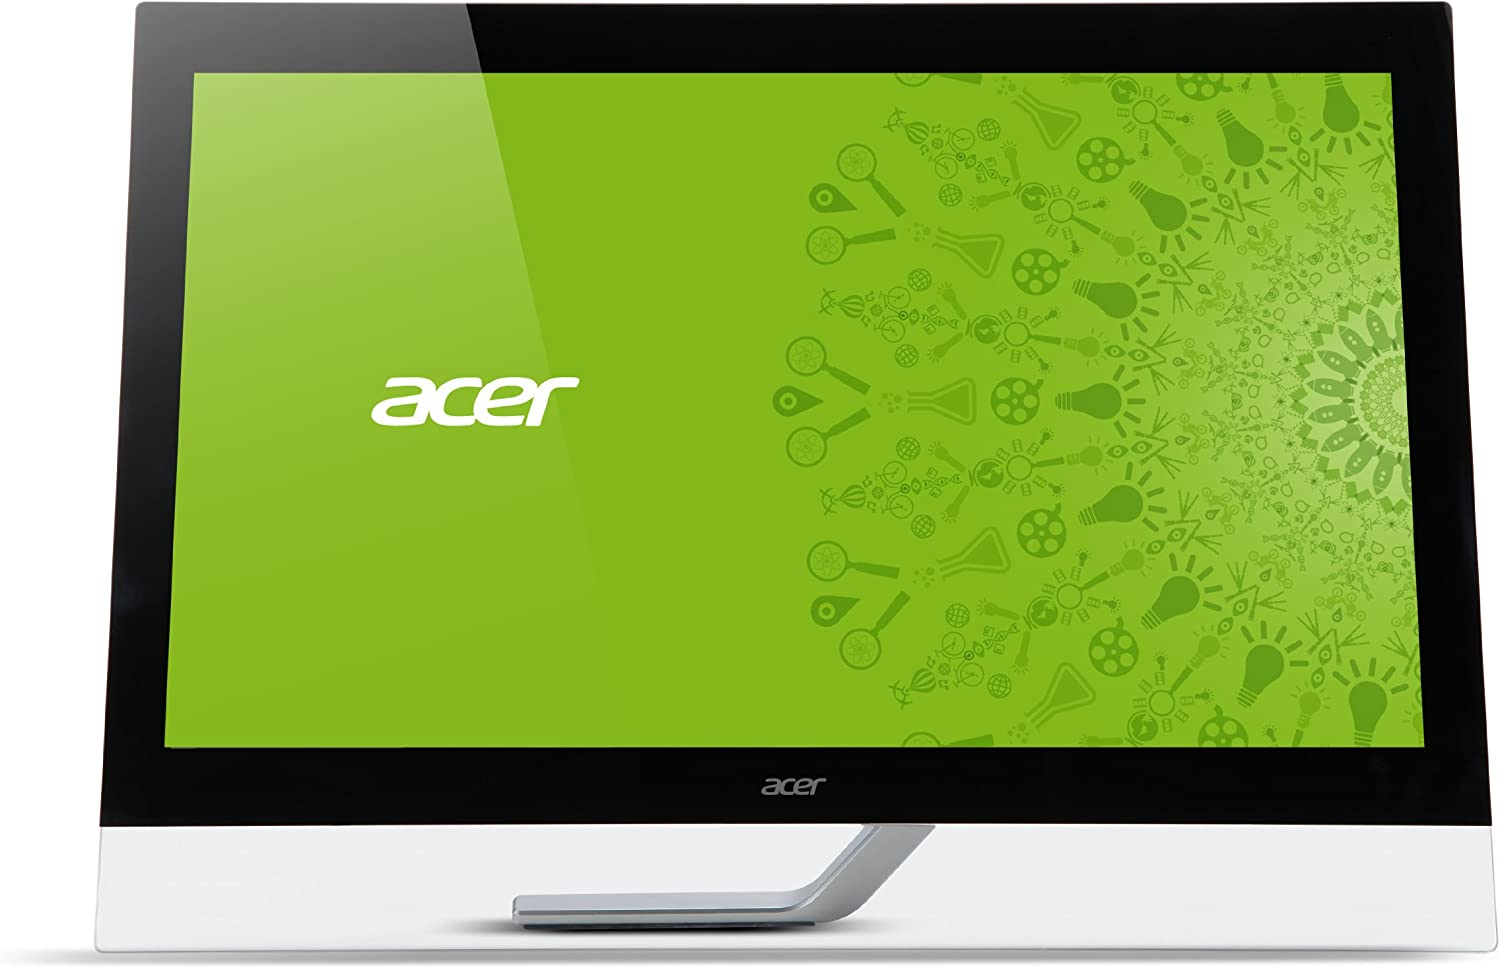 Acer T272HL bmjjz 27-Inch (1920 x 1080) Touch Screen Widescreen Monitor, Black